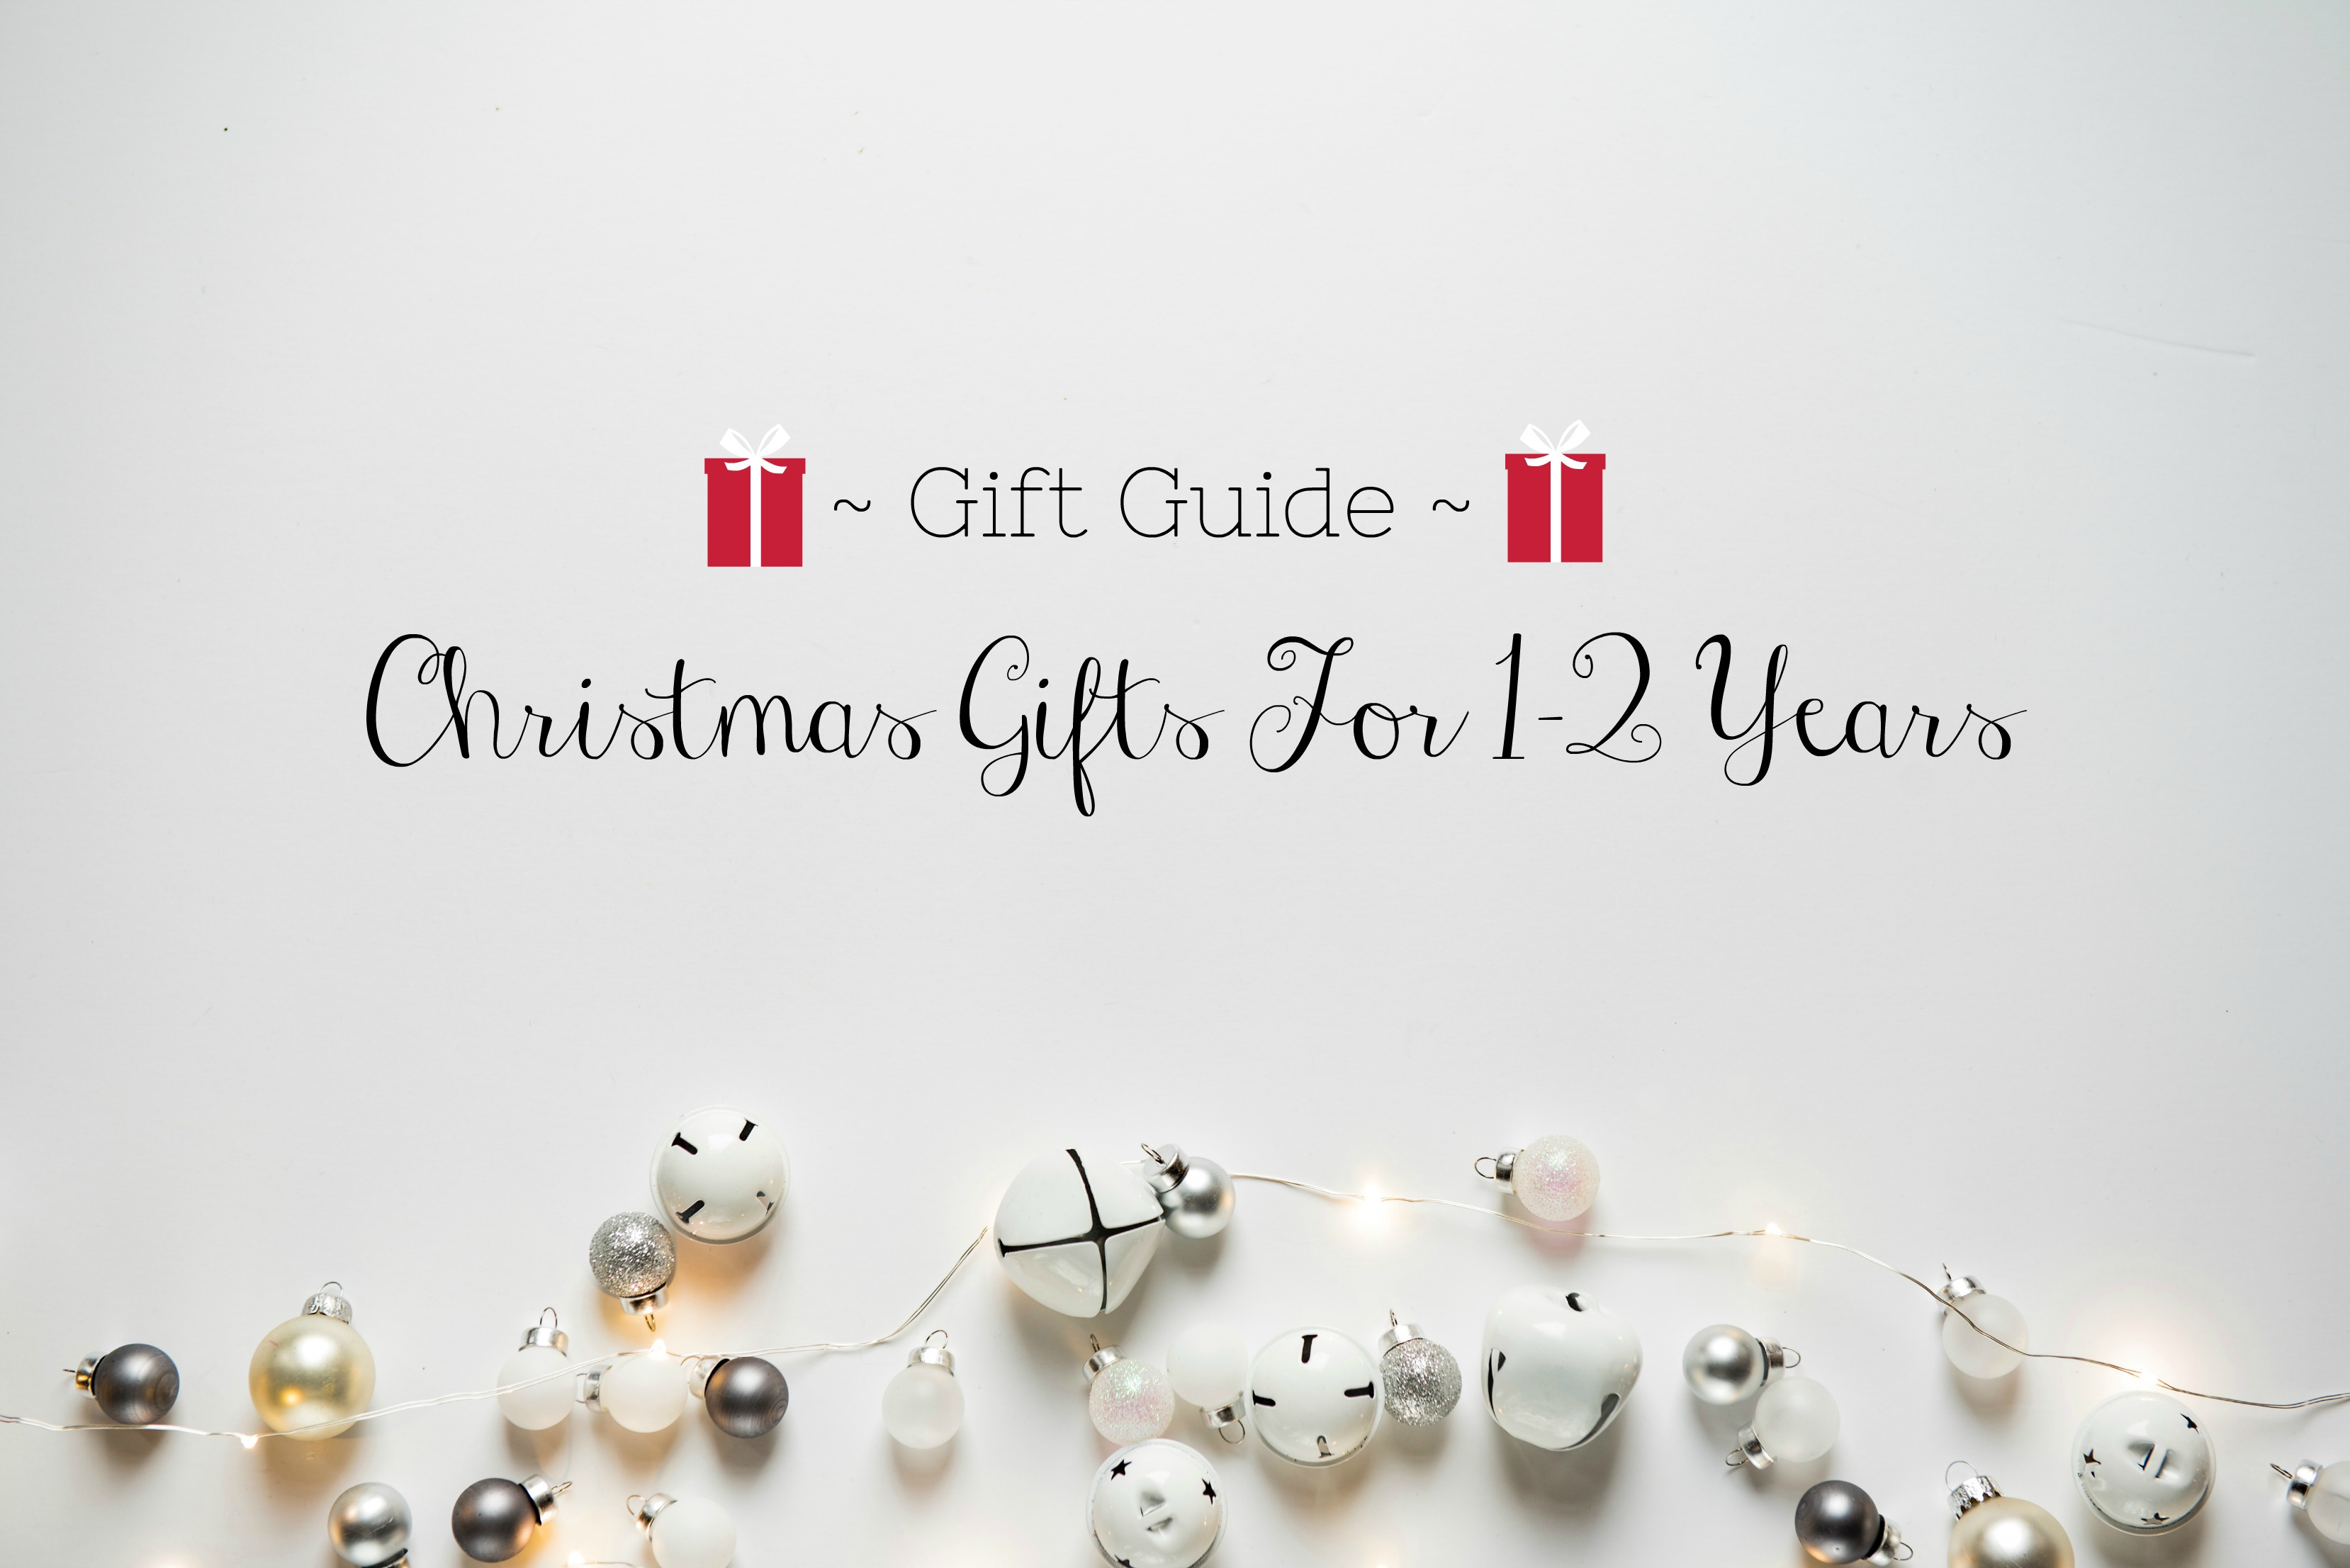 gift guide for 1-2 years